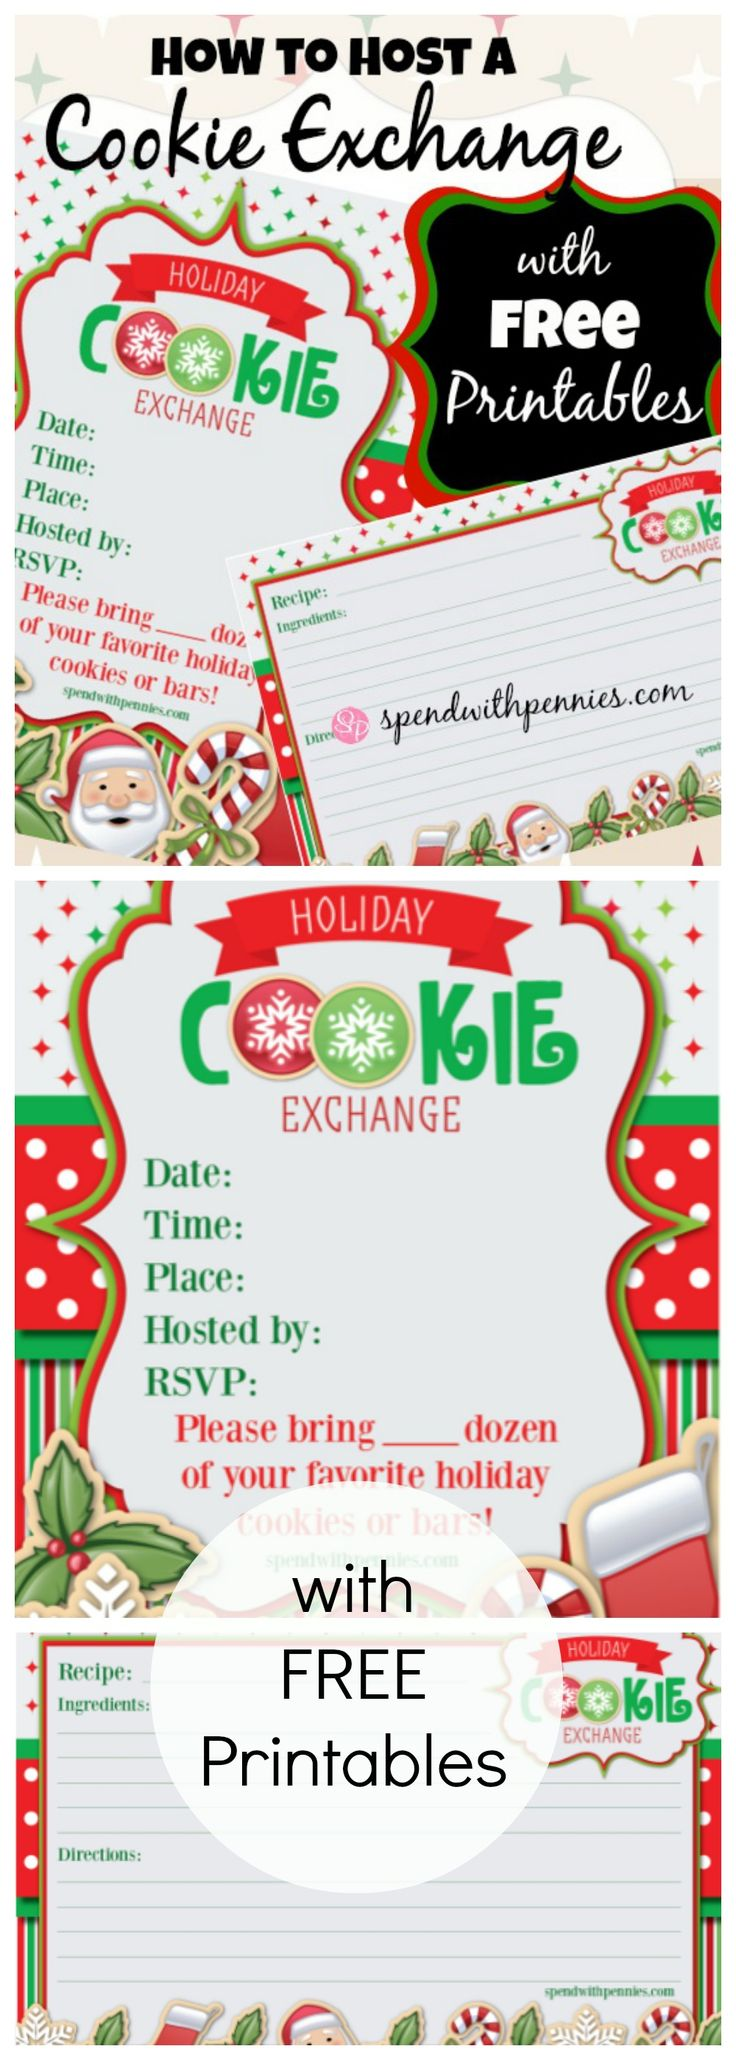 How To Host A Cookie Exchange! Free Printable Invitations And Recipe Cards